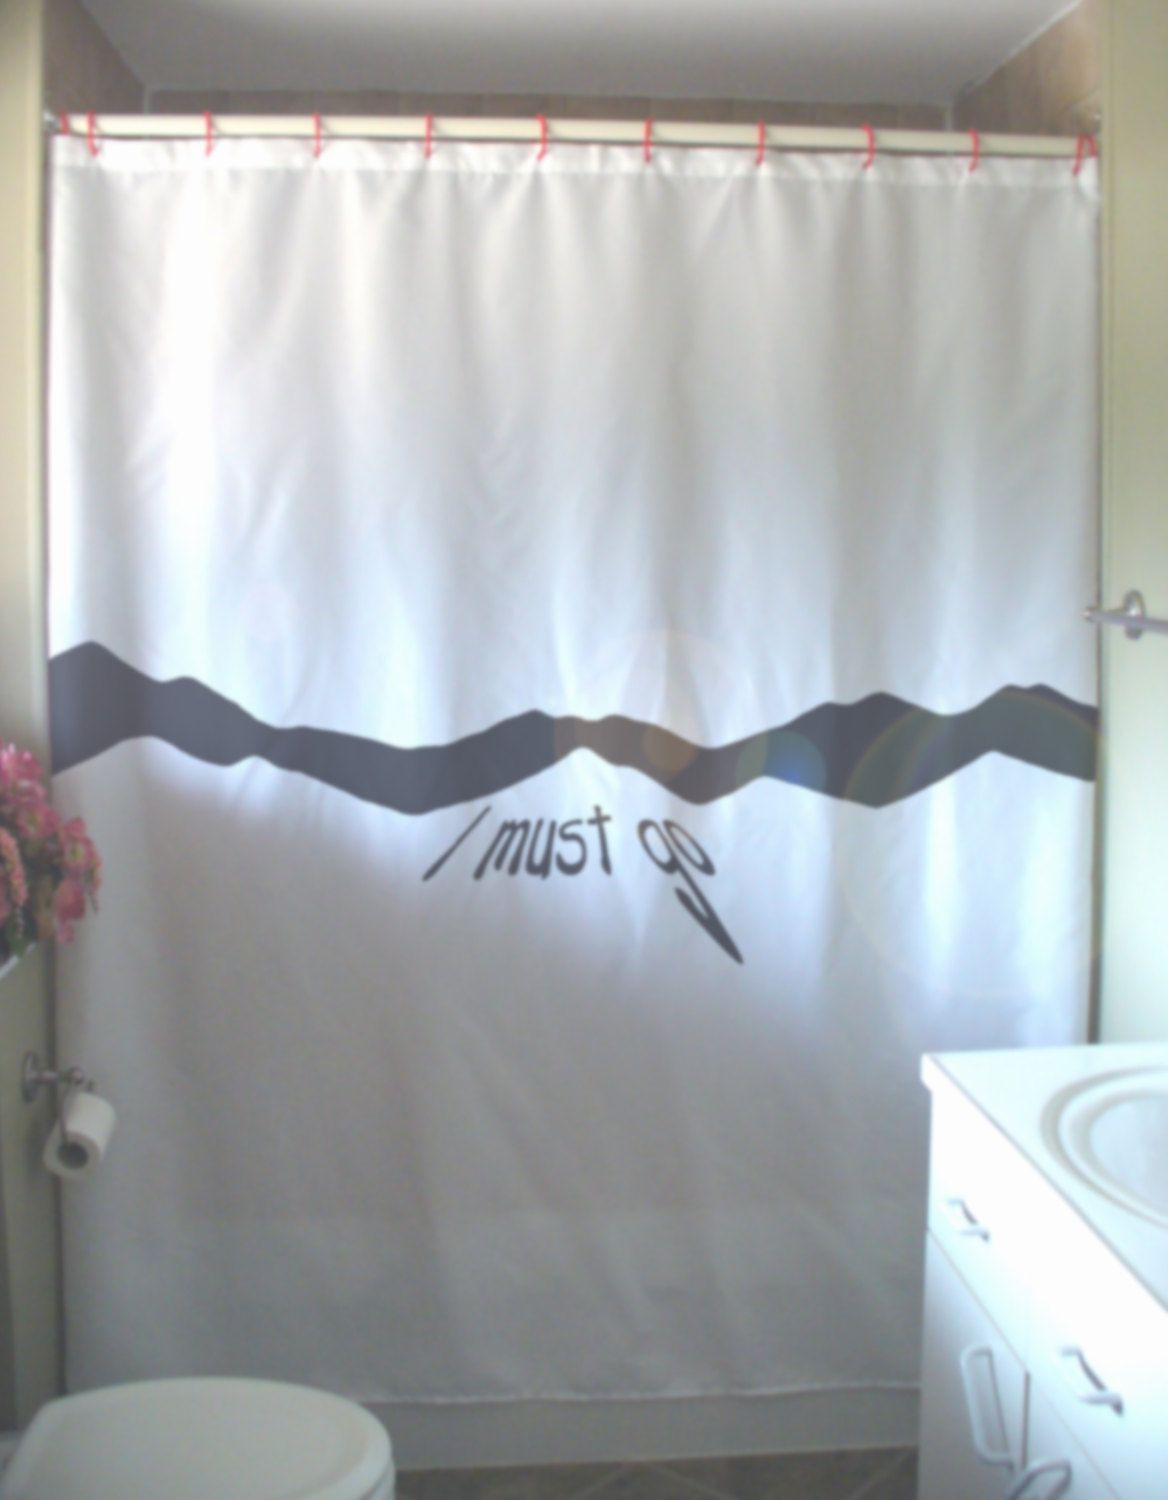 I MUST GO Shower Curtain to the mountain mountains are calling ...